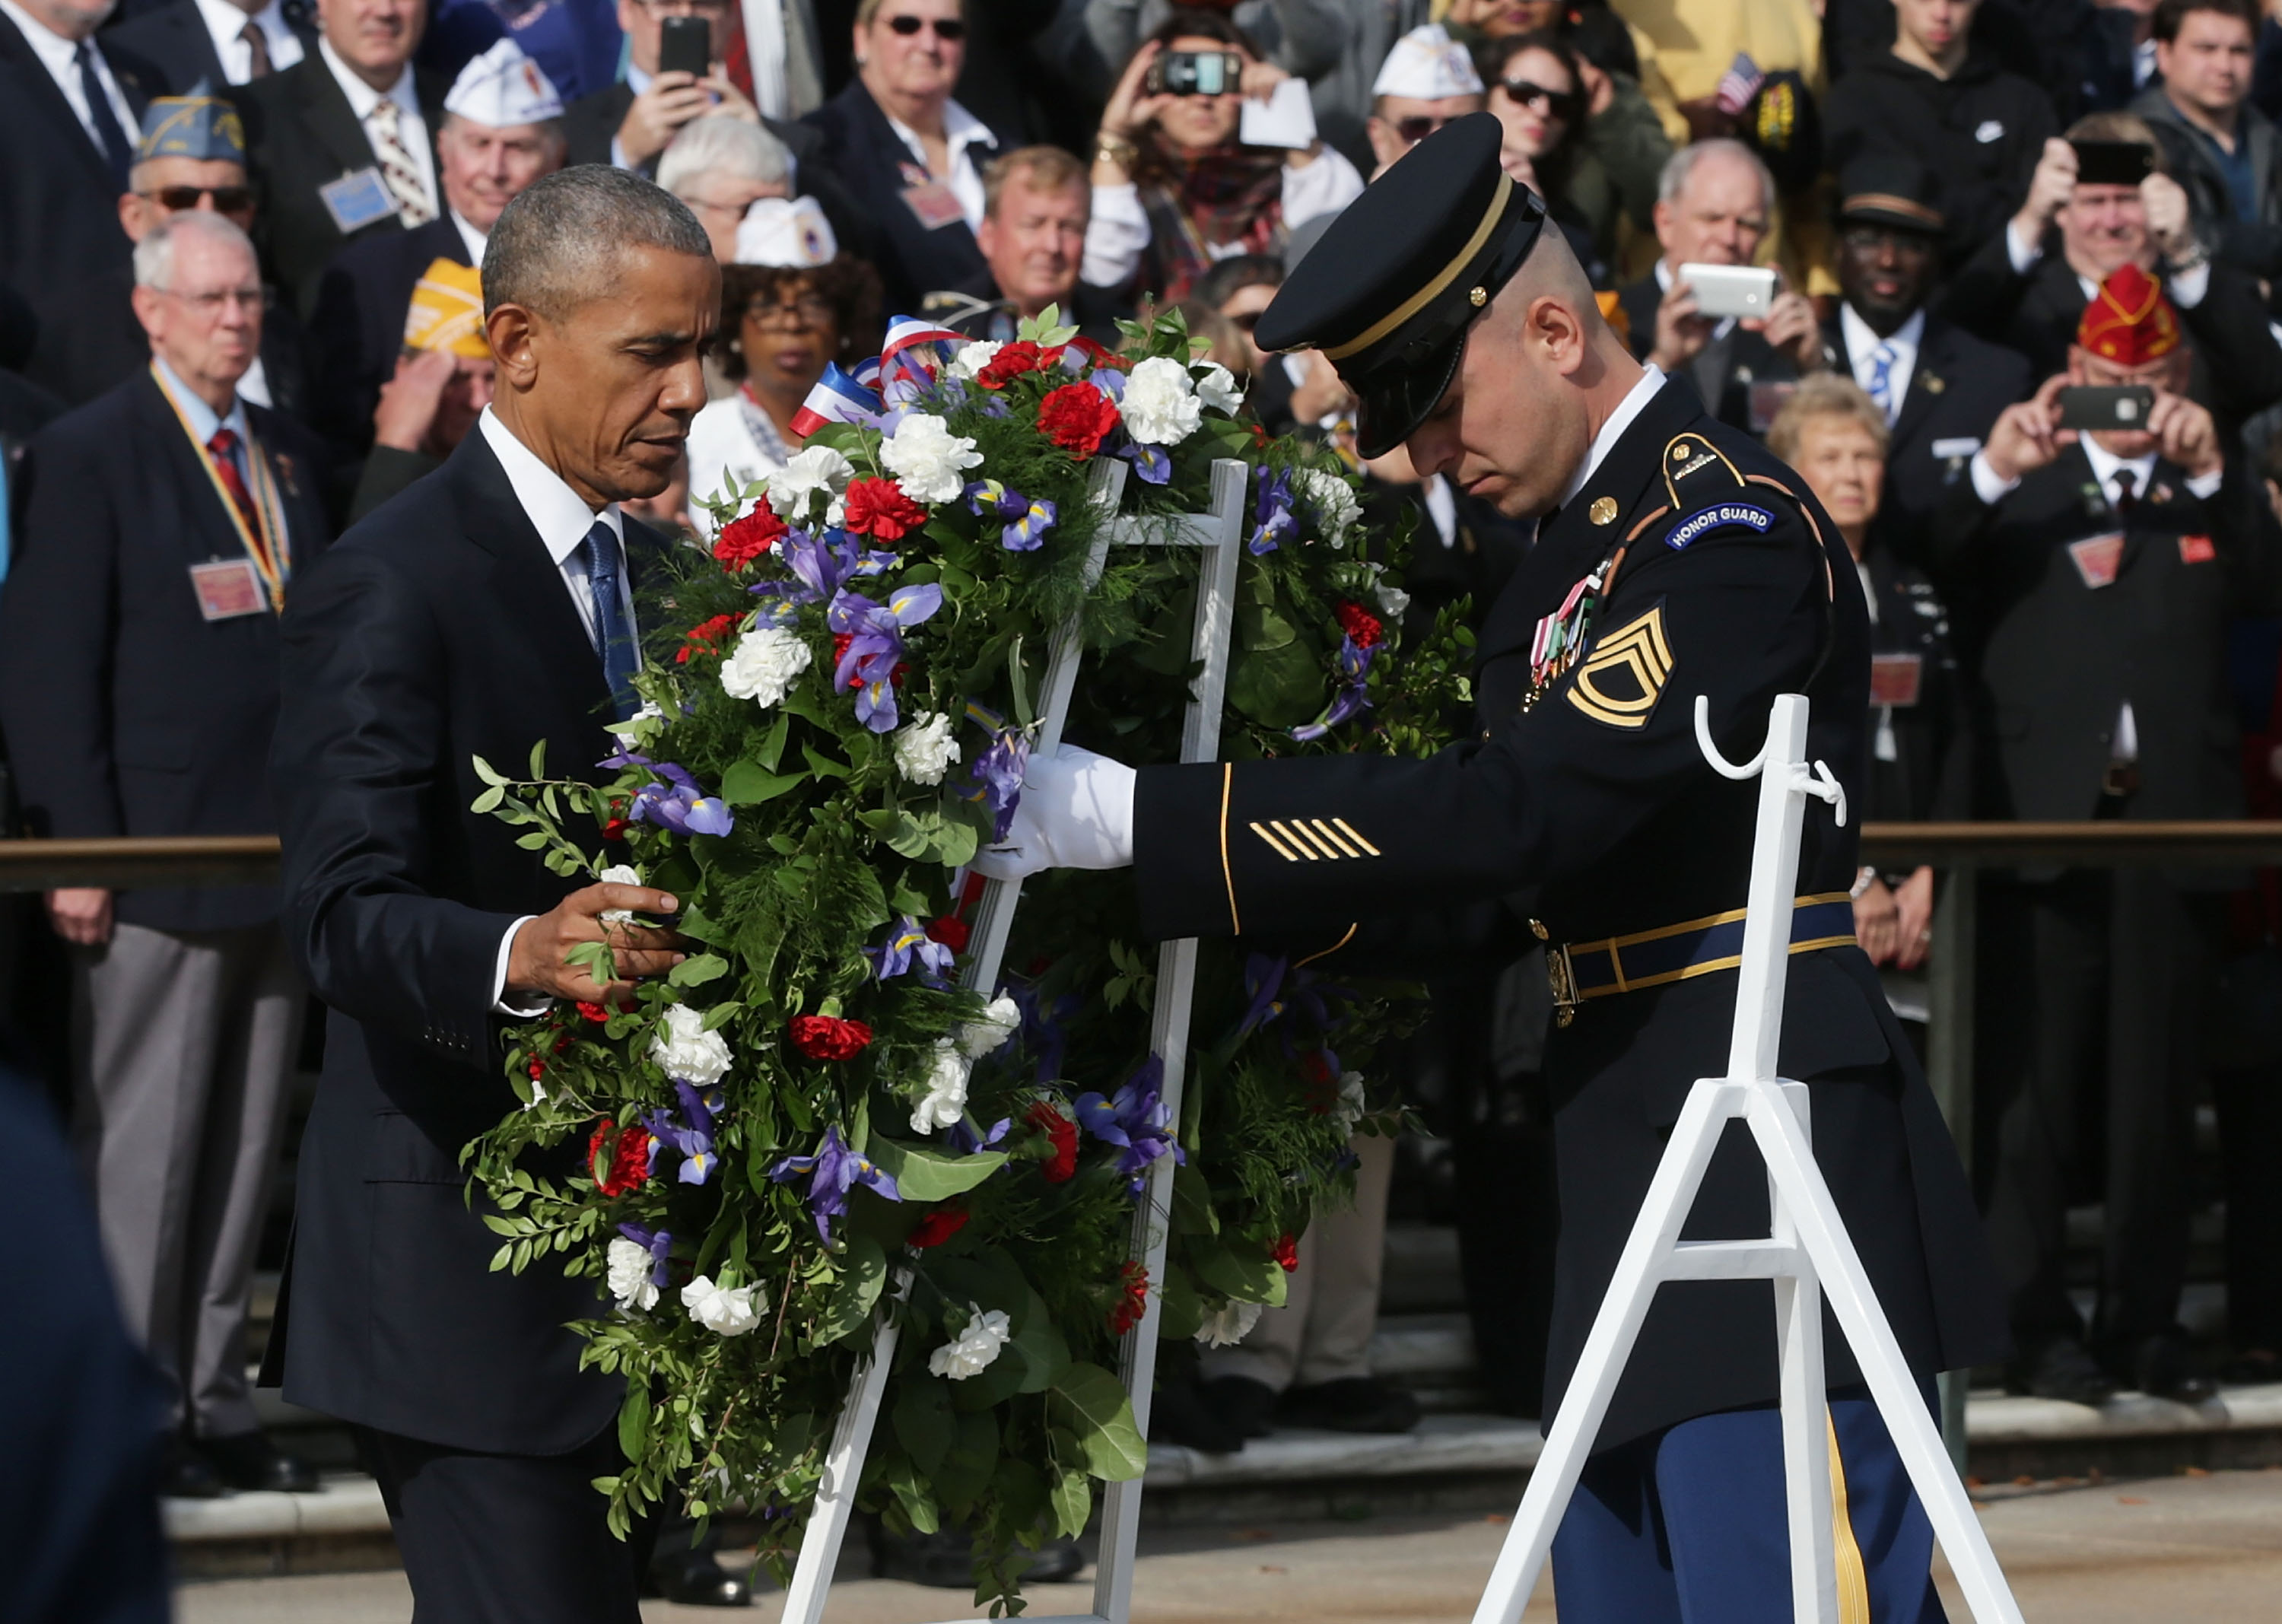 U.S. President Barack Obama participates in a wreath-laying ceremony at the Tomb of the Unknown Soldier at Arlington National Cemetery on Veterans Day November 11, 2016 in Arlington, Virginia. The annual Veterans Day National Ceremony was held at the cemetery to honor Americans who had served in the U.S. Armed Forces.